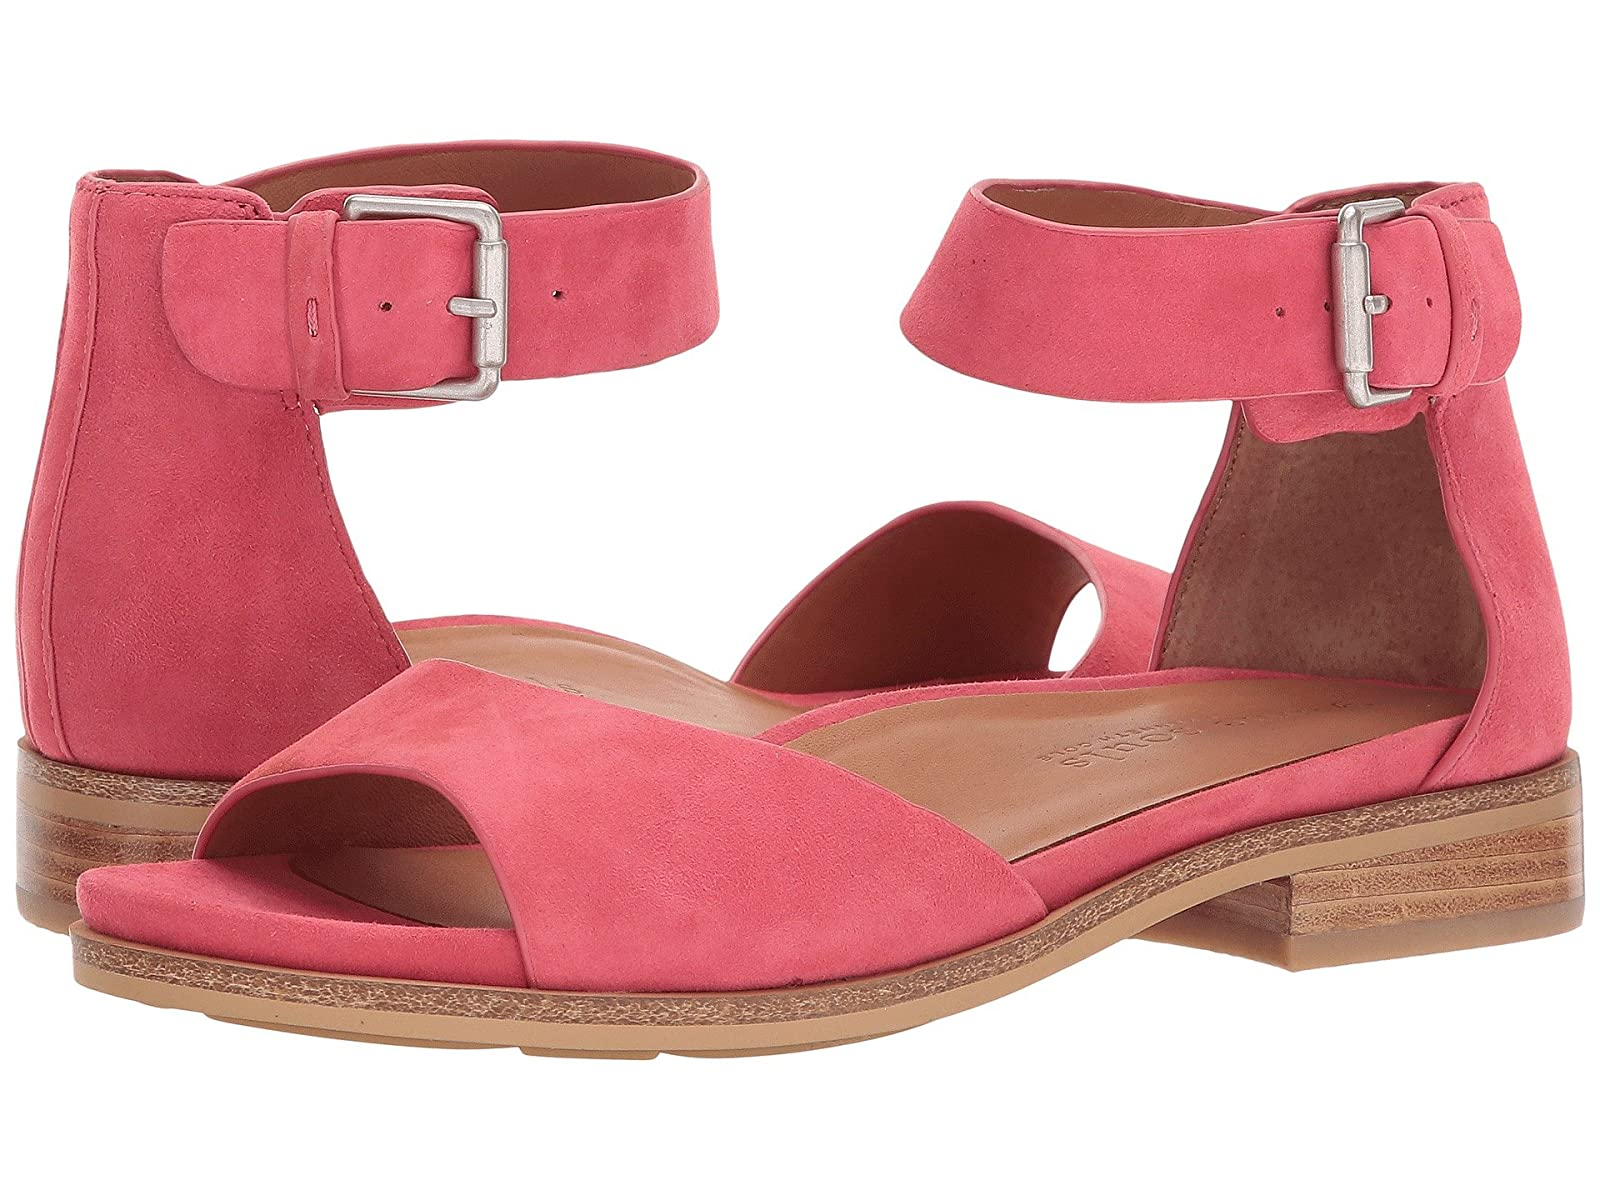 Gentle Souls by Kenneth Cole GraceyCheap and distinctive eye-catching shoes